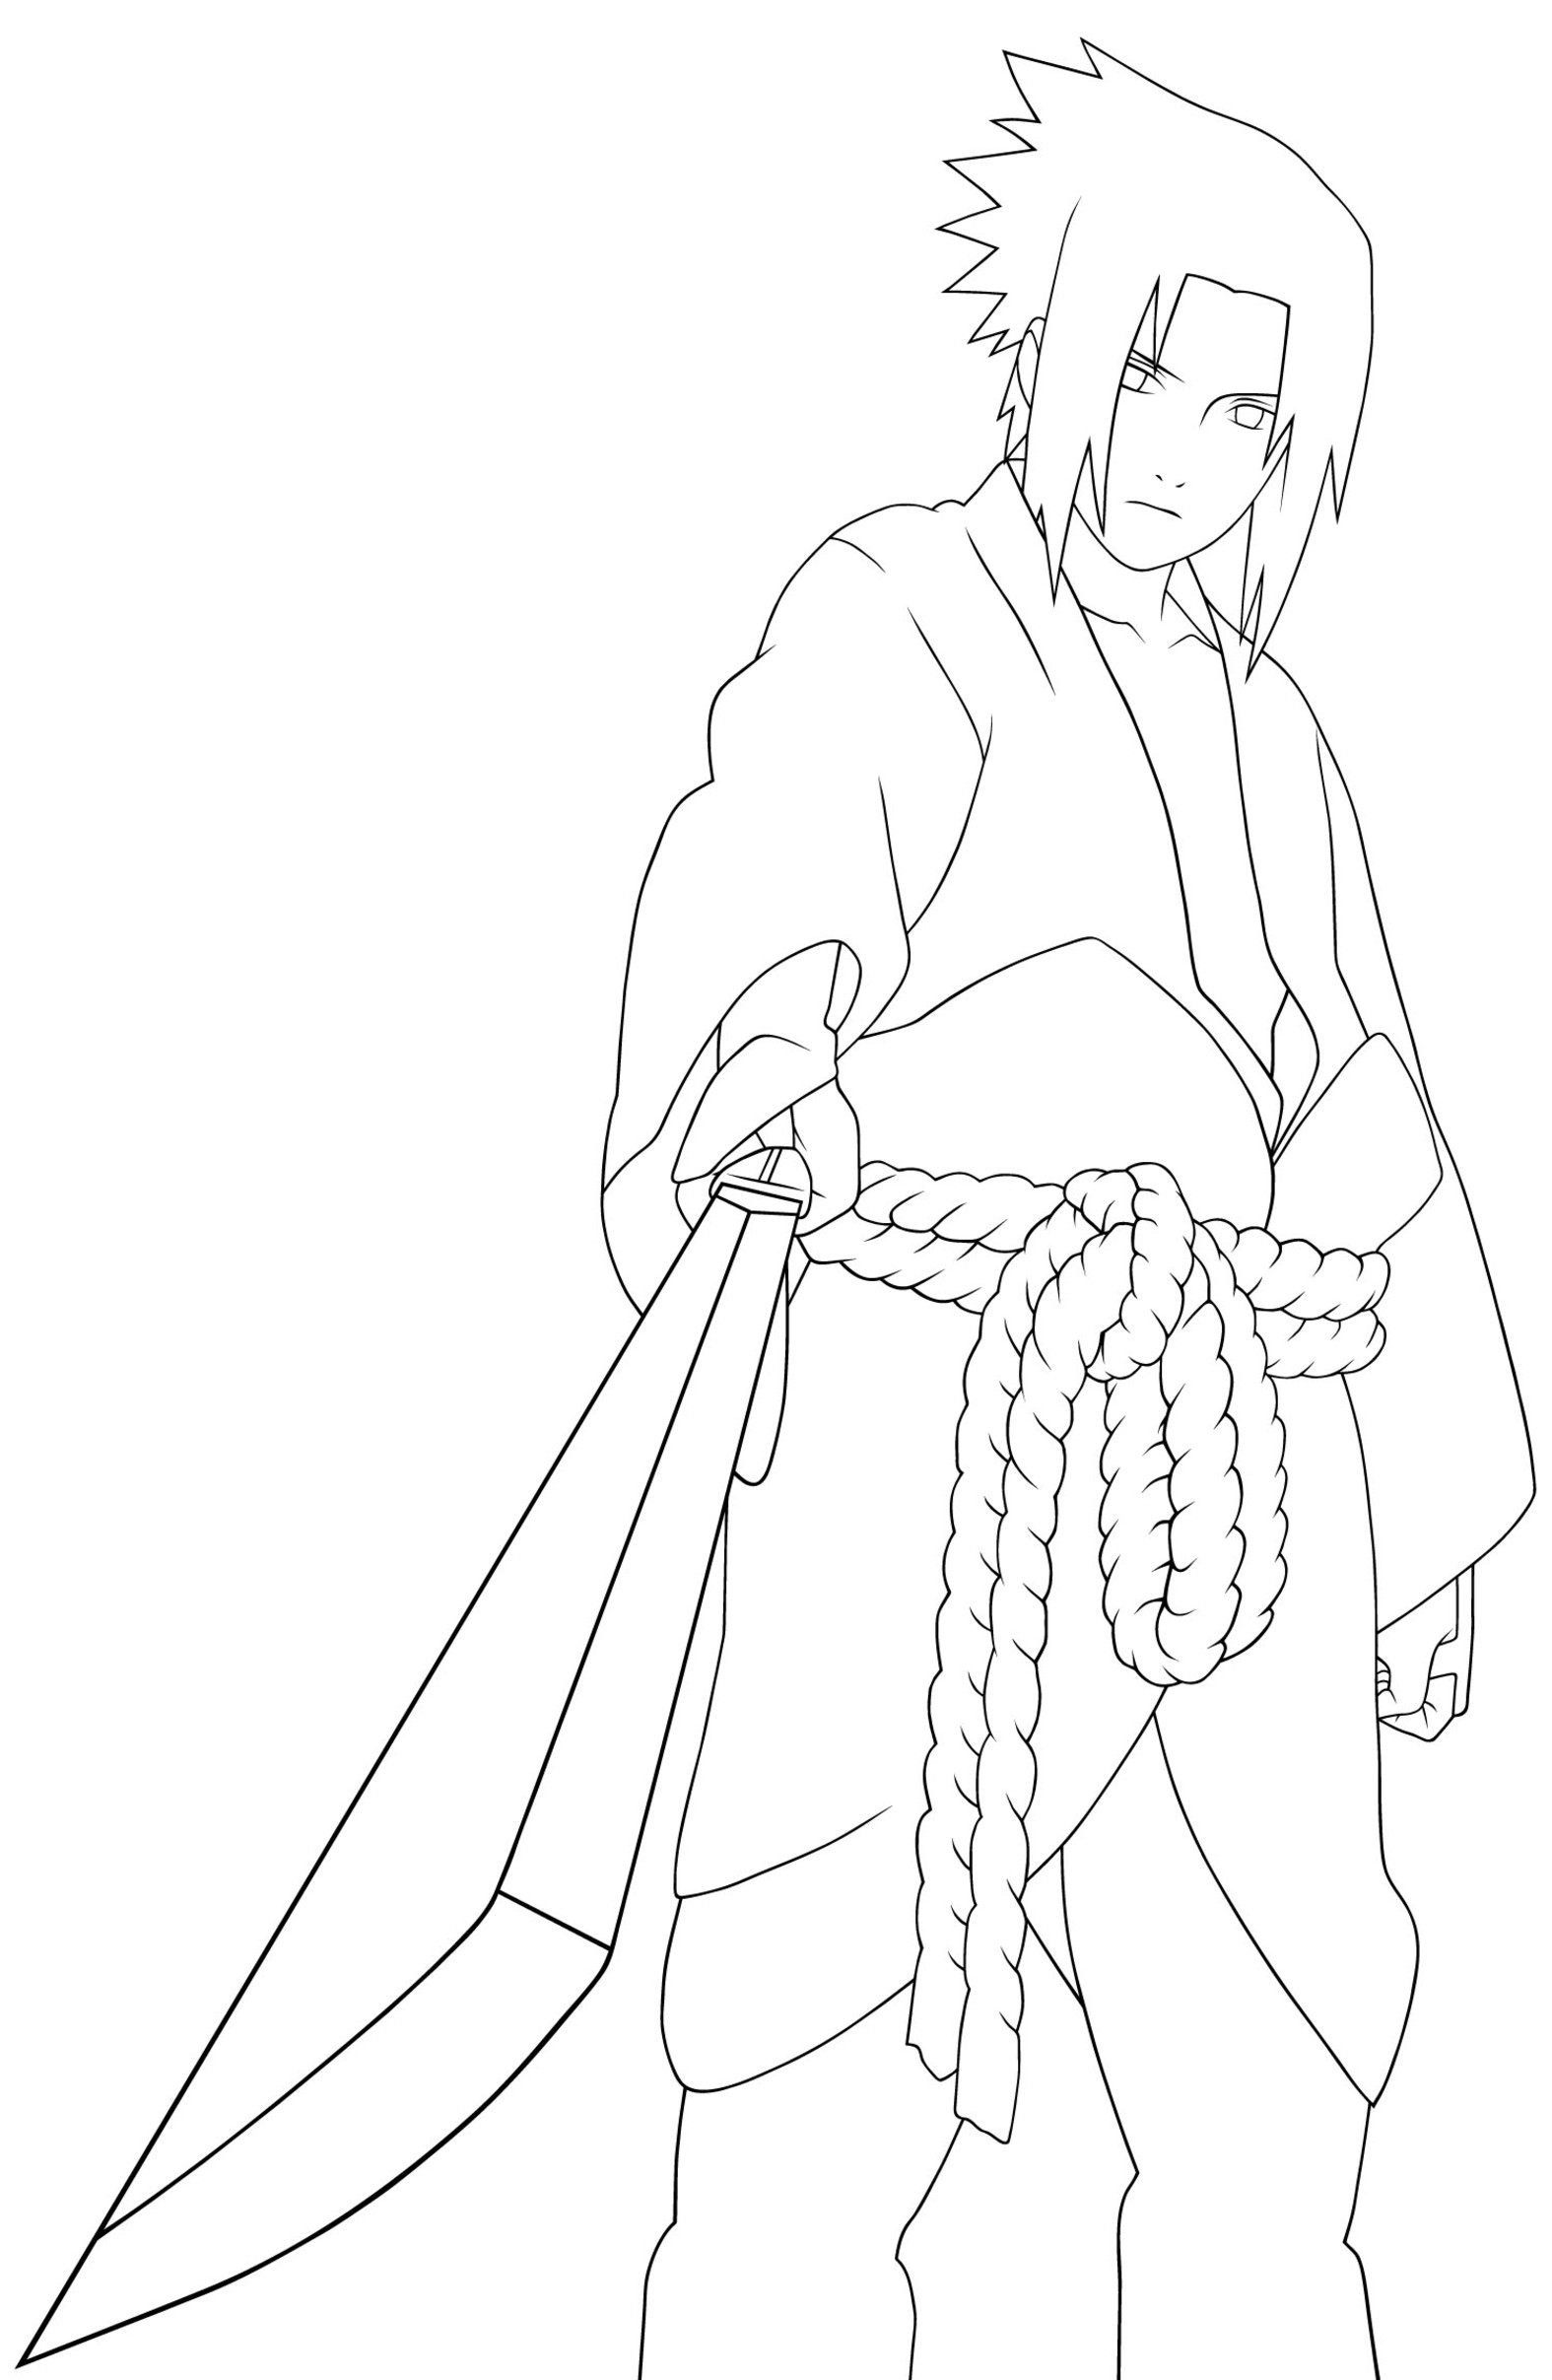 naruto coloring sheets printable naruto coloring pages to get your kids occupied sheets coloring naruto